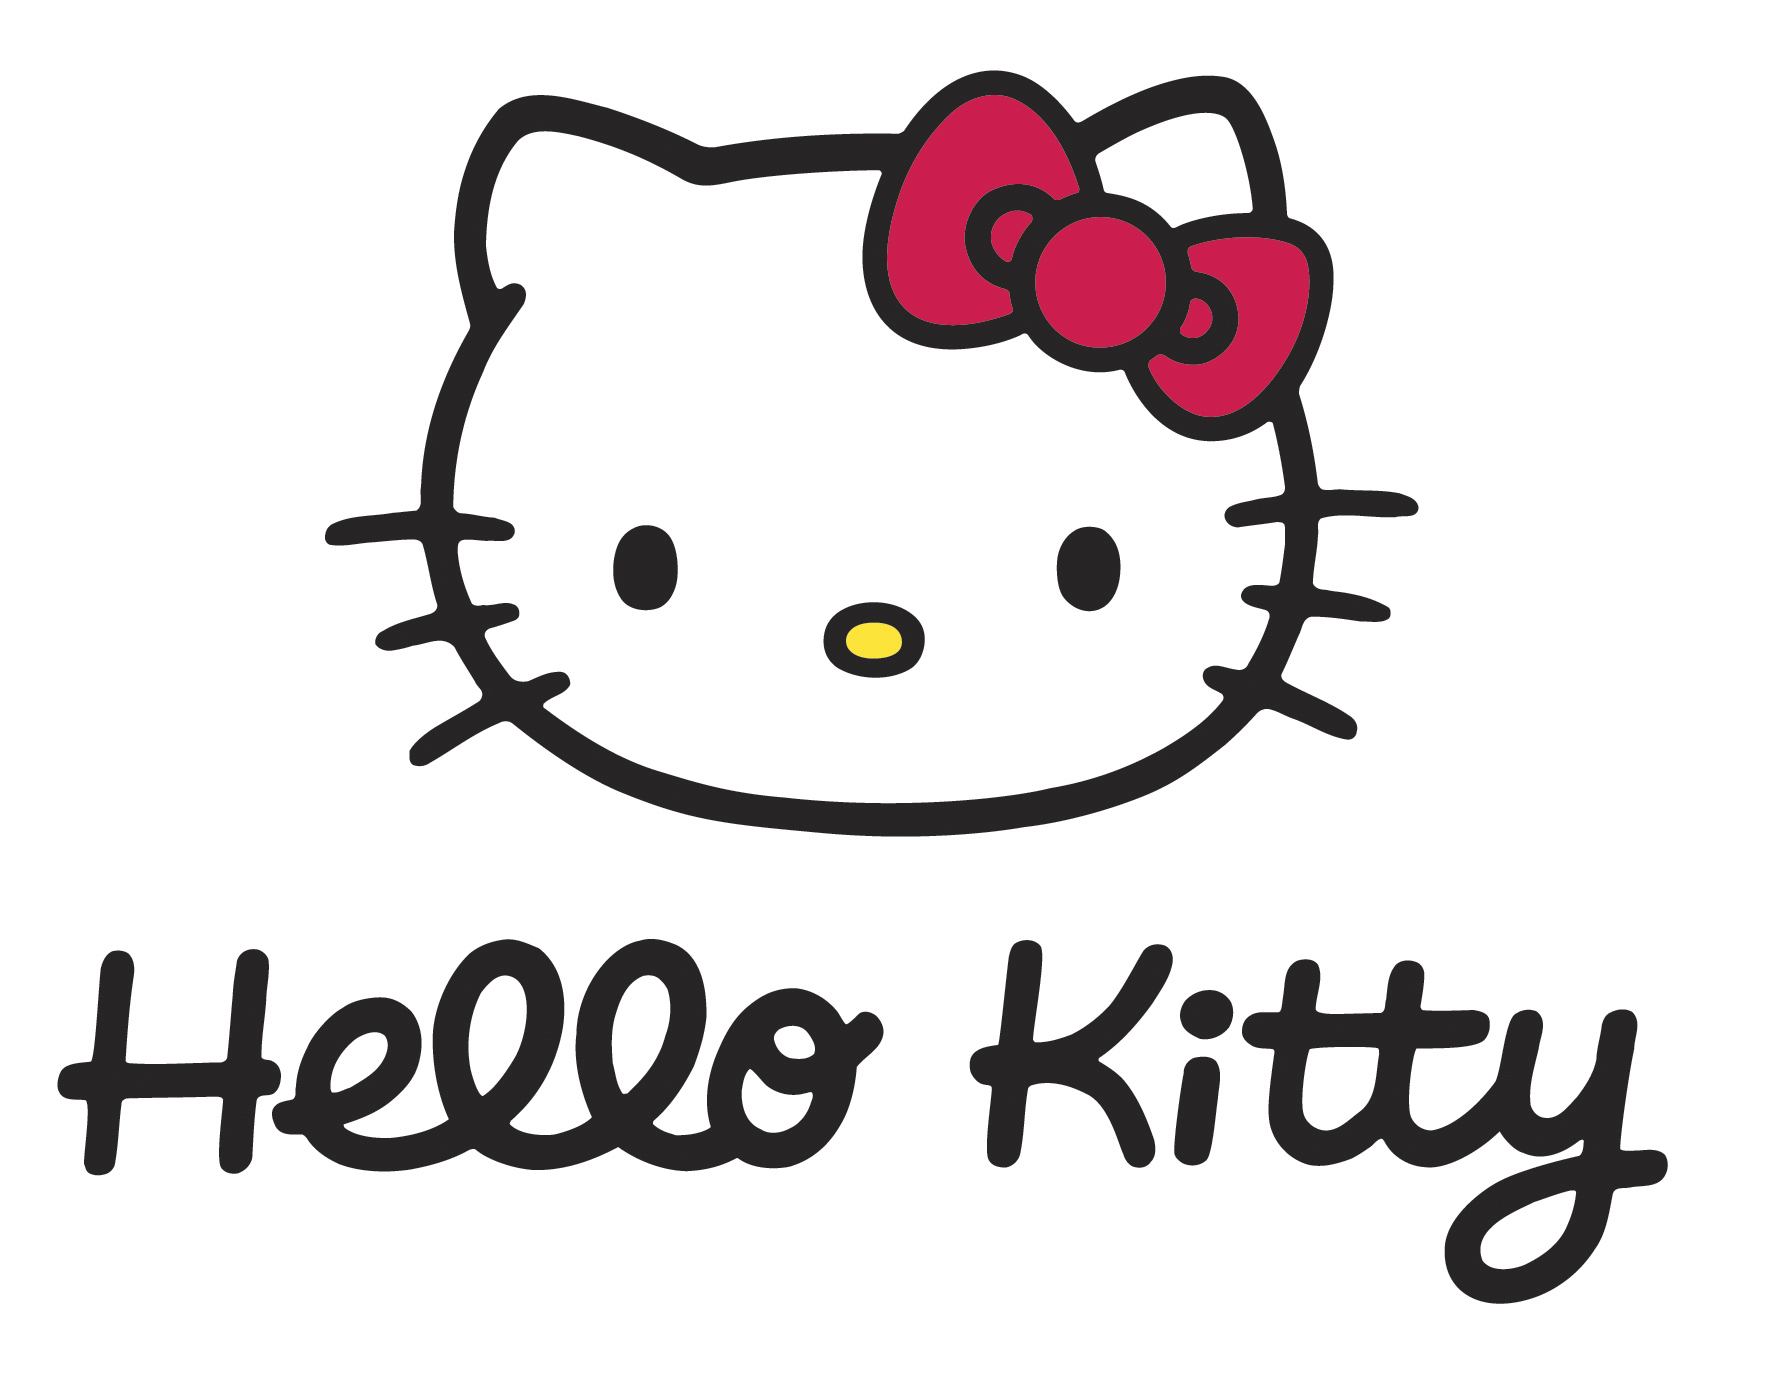 Dessins en couleurs imprimer hello kitty num ro 214021 - Tete hello kitty ...